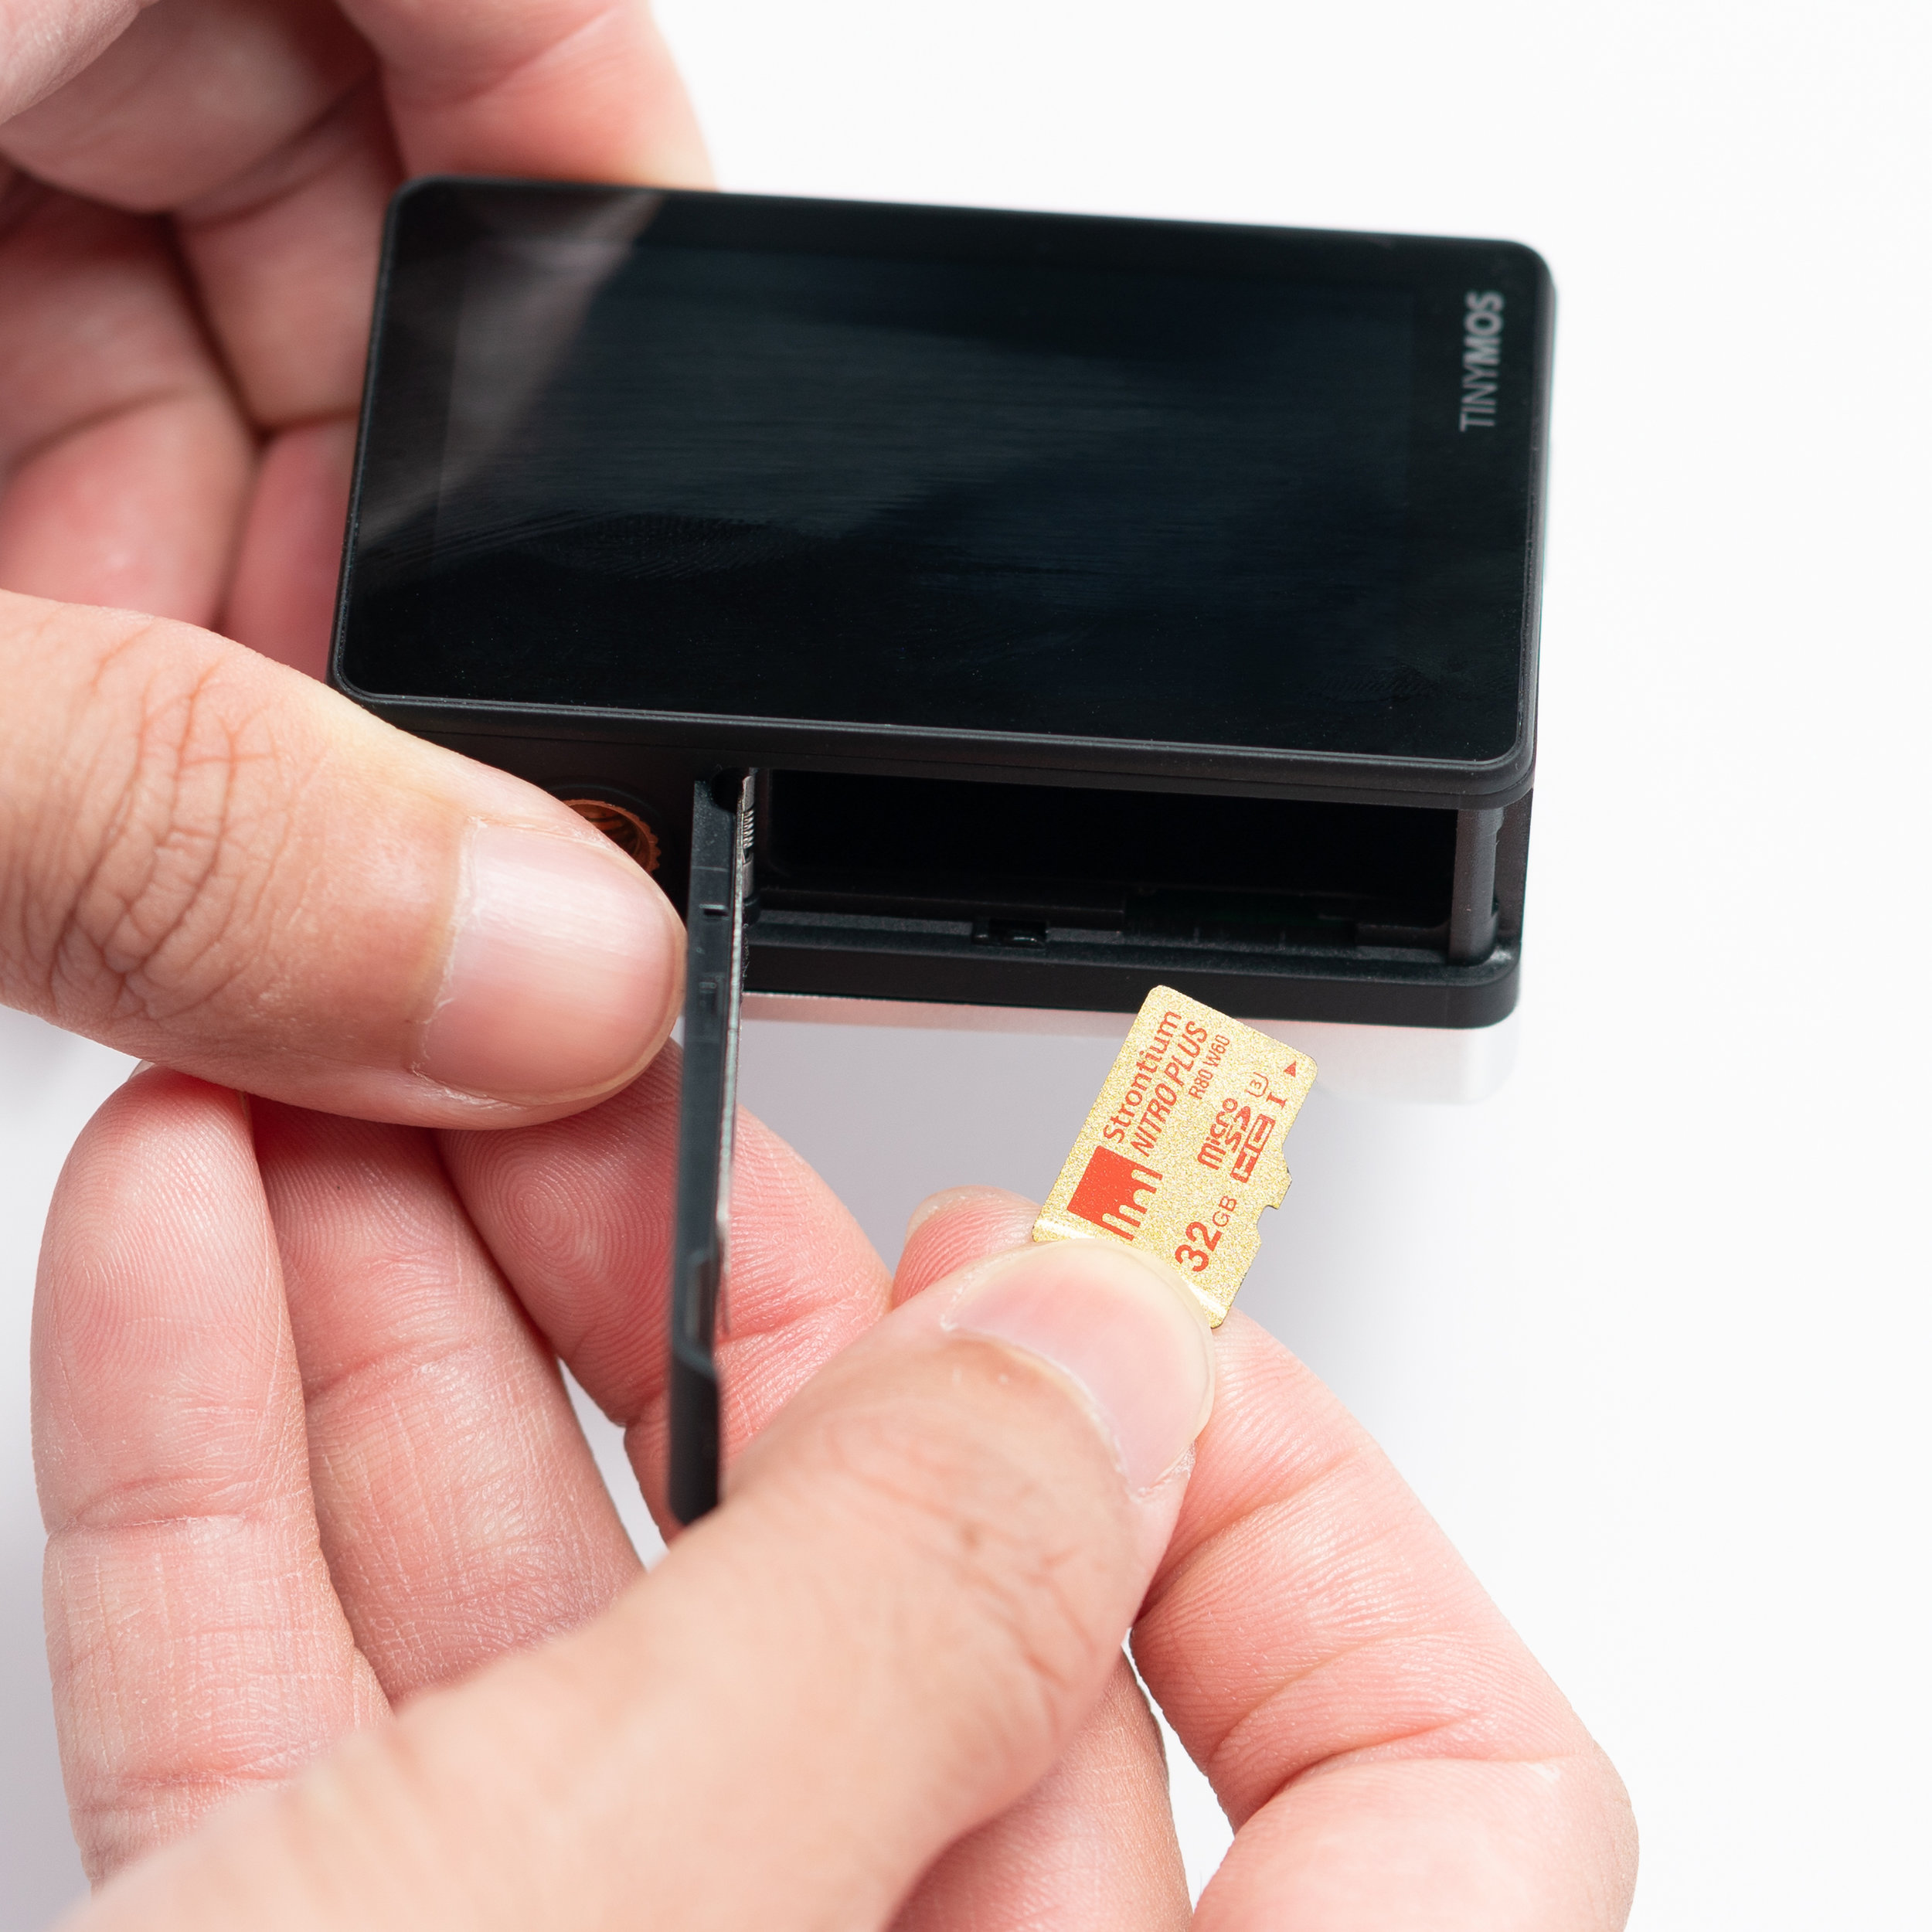 1. To insert a micro-SD card, place it facing in the direction as shown.